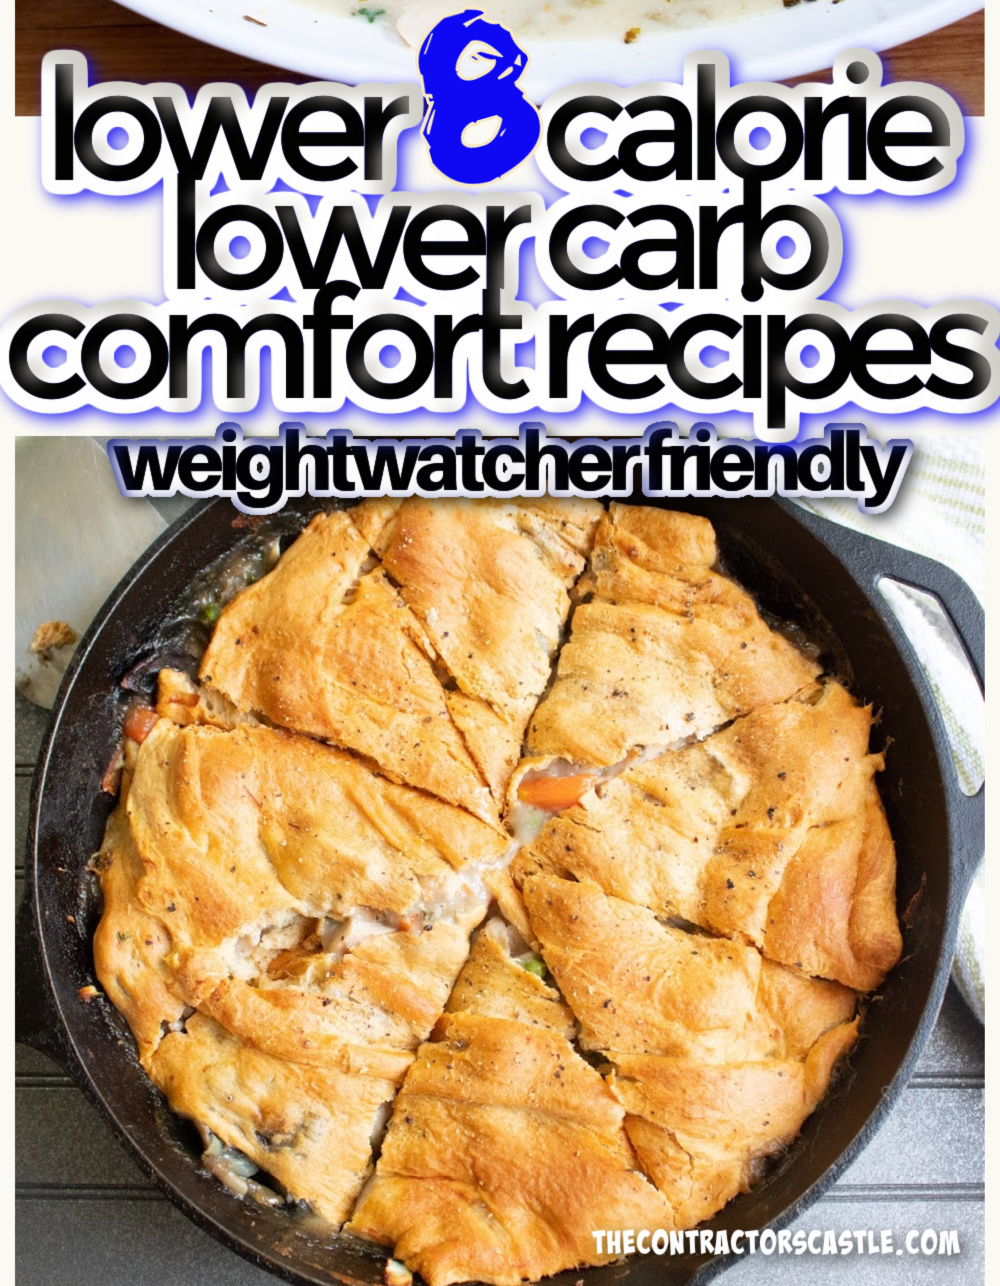 Delicious and Easy Lower Calorie Lower Carb Comfort Food Recipes